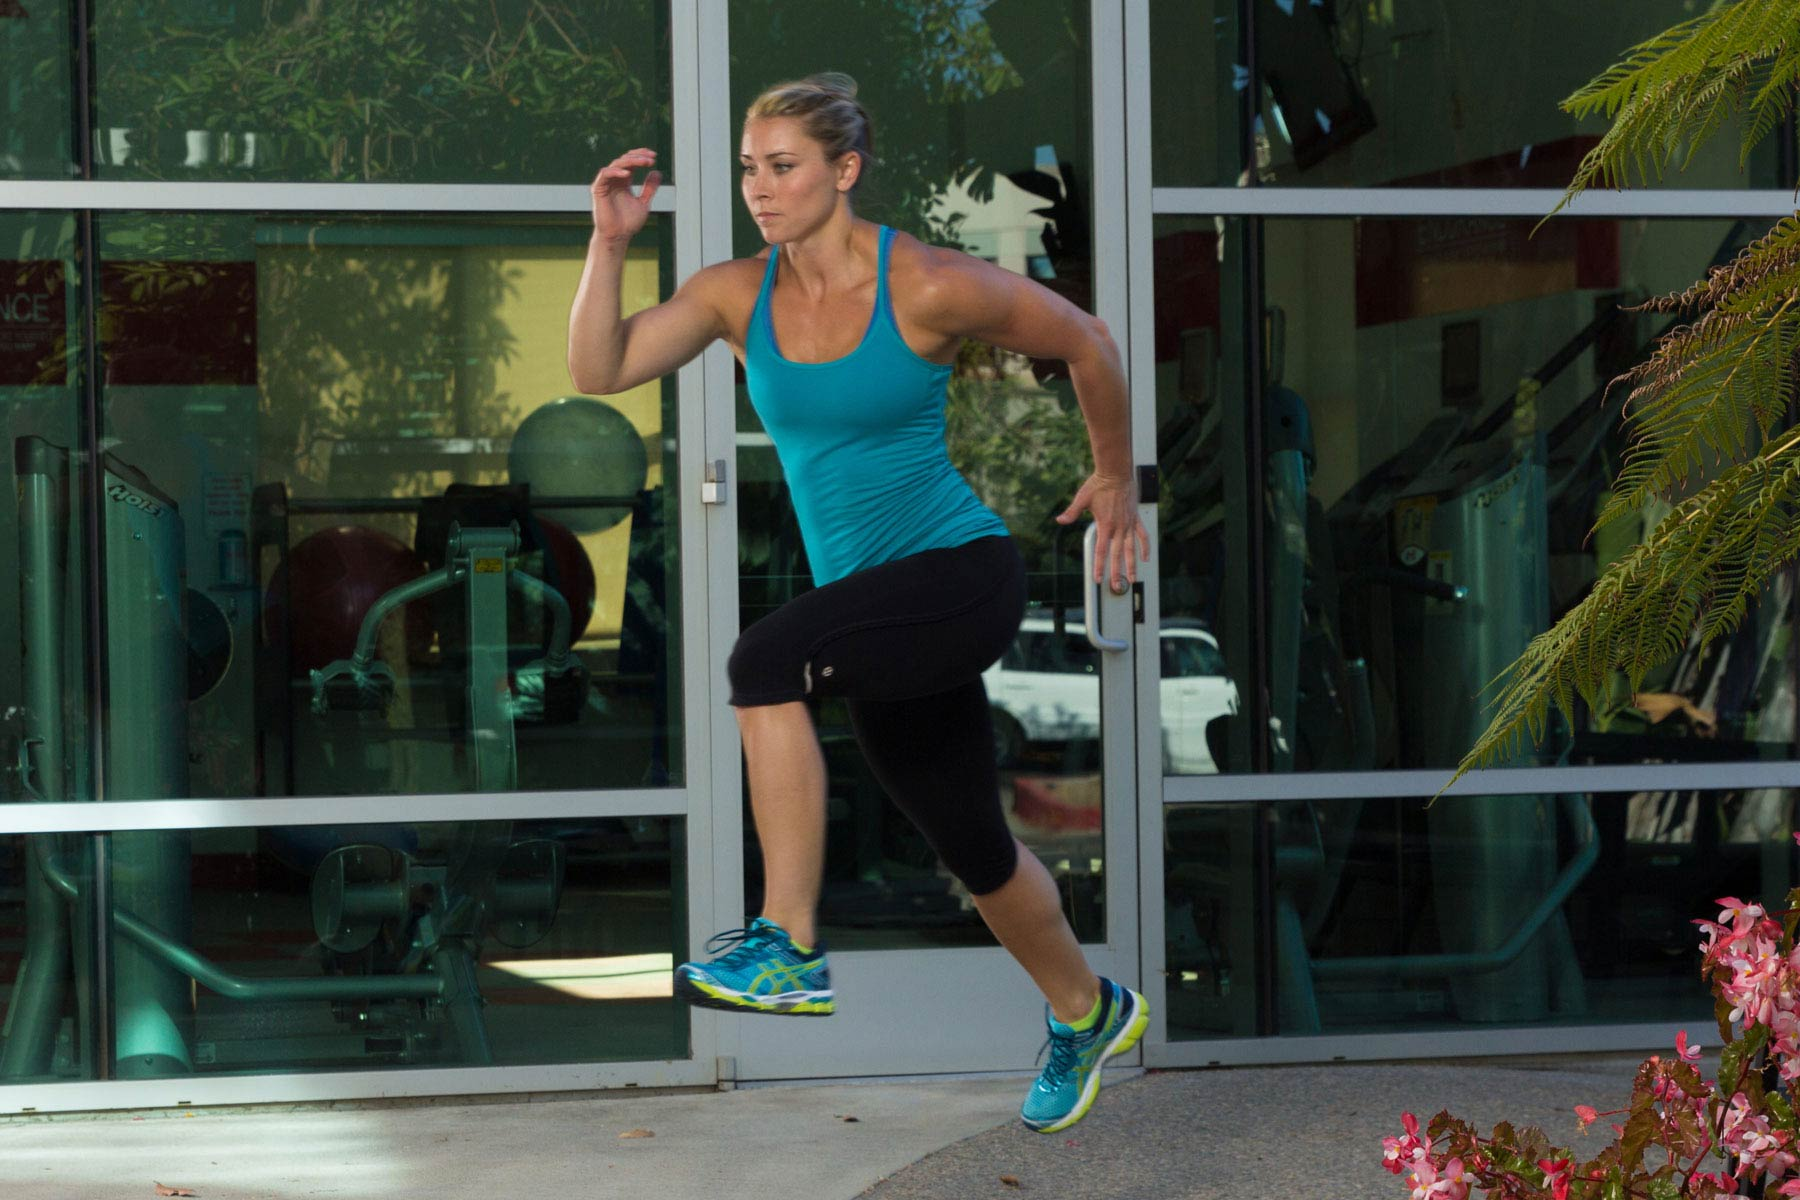 Total-body Plyometrics Workout | Jacqueline Crockford | Expert Articles | 7/14/2014